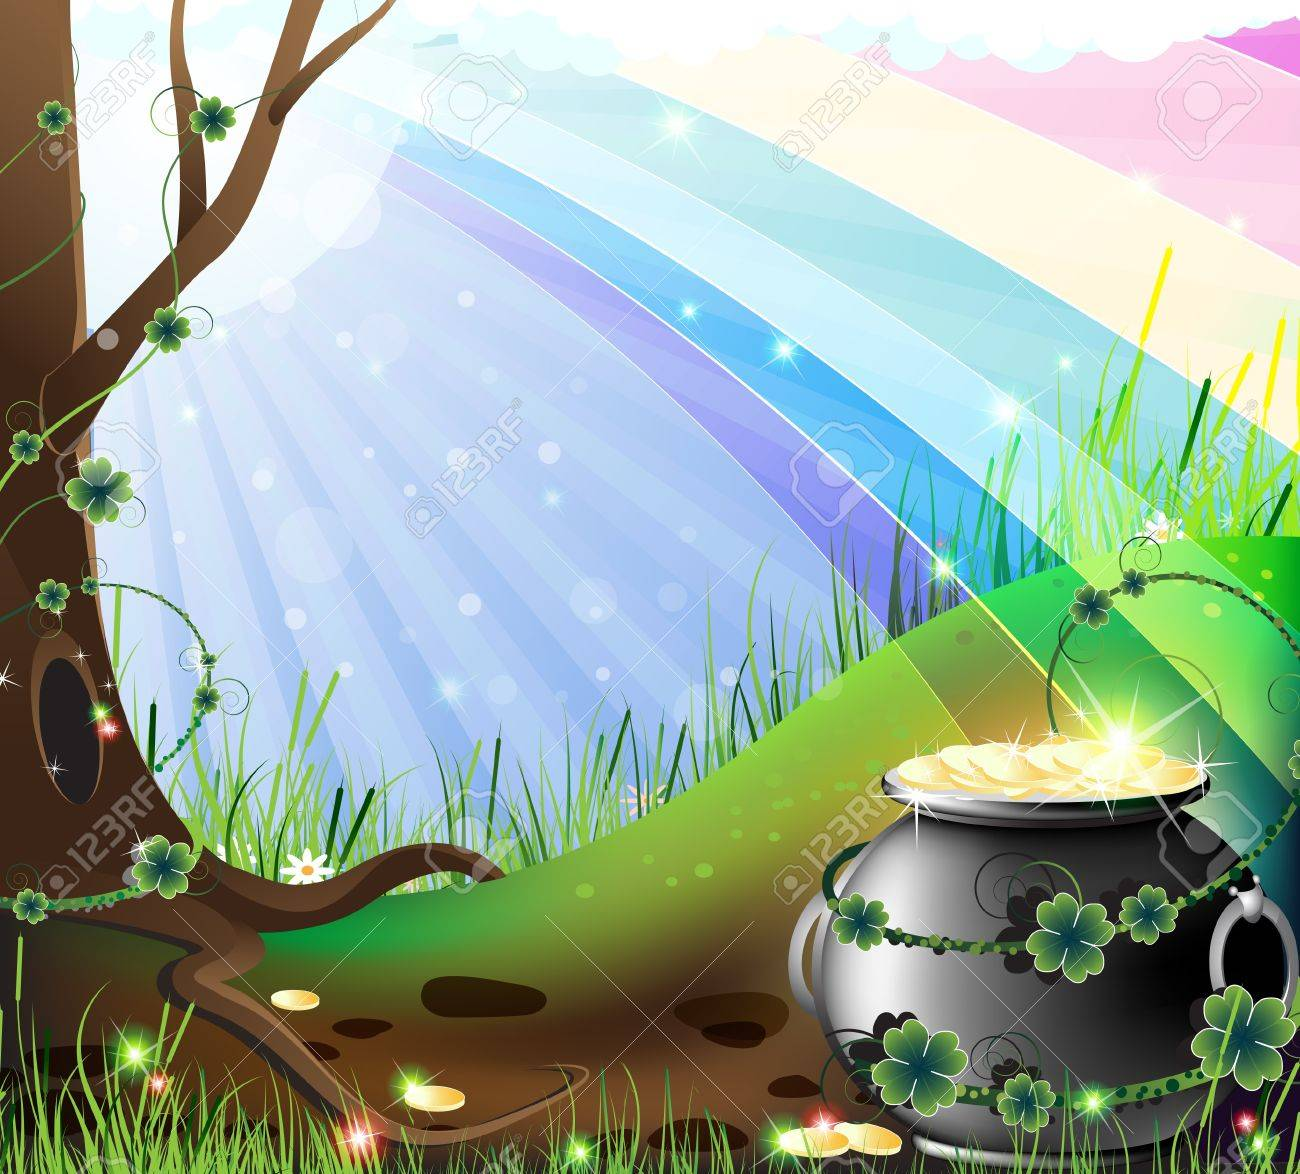 Rainbow shows the way to the lawn to the hidden treasures of the leprechaun - 12828608